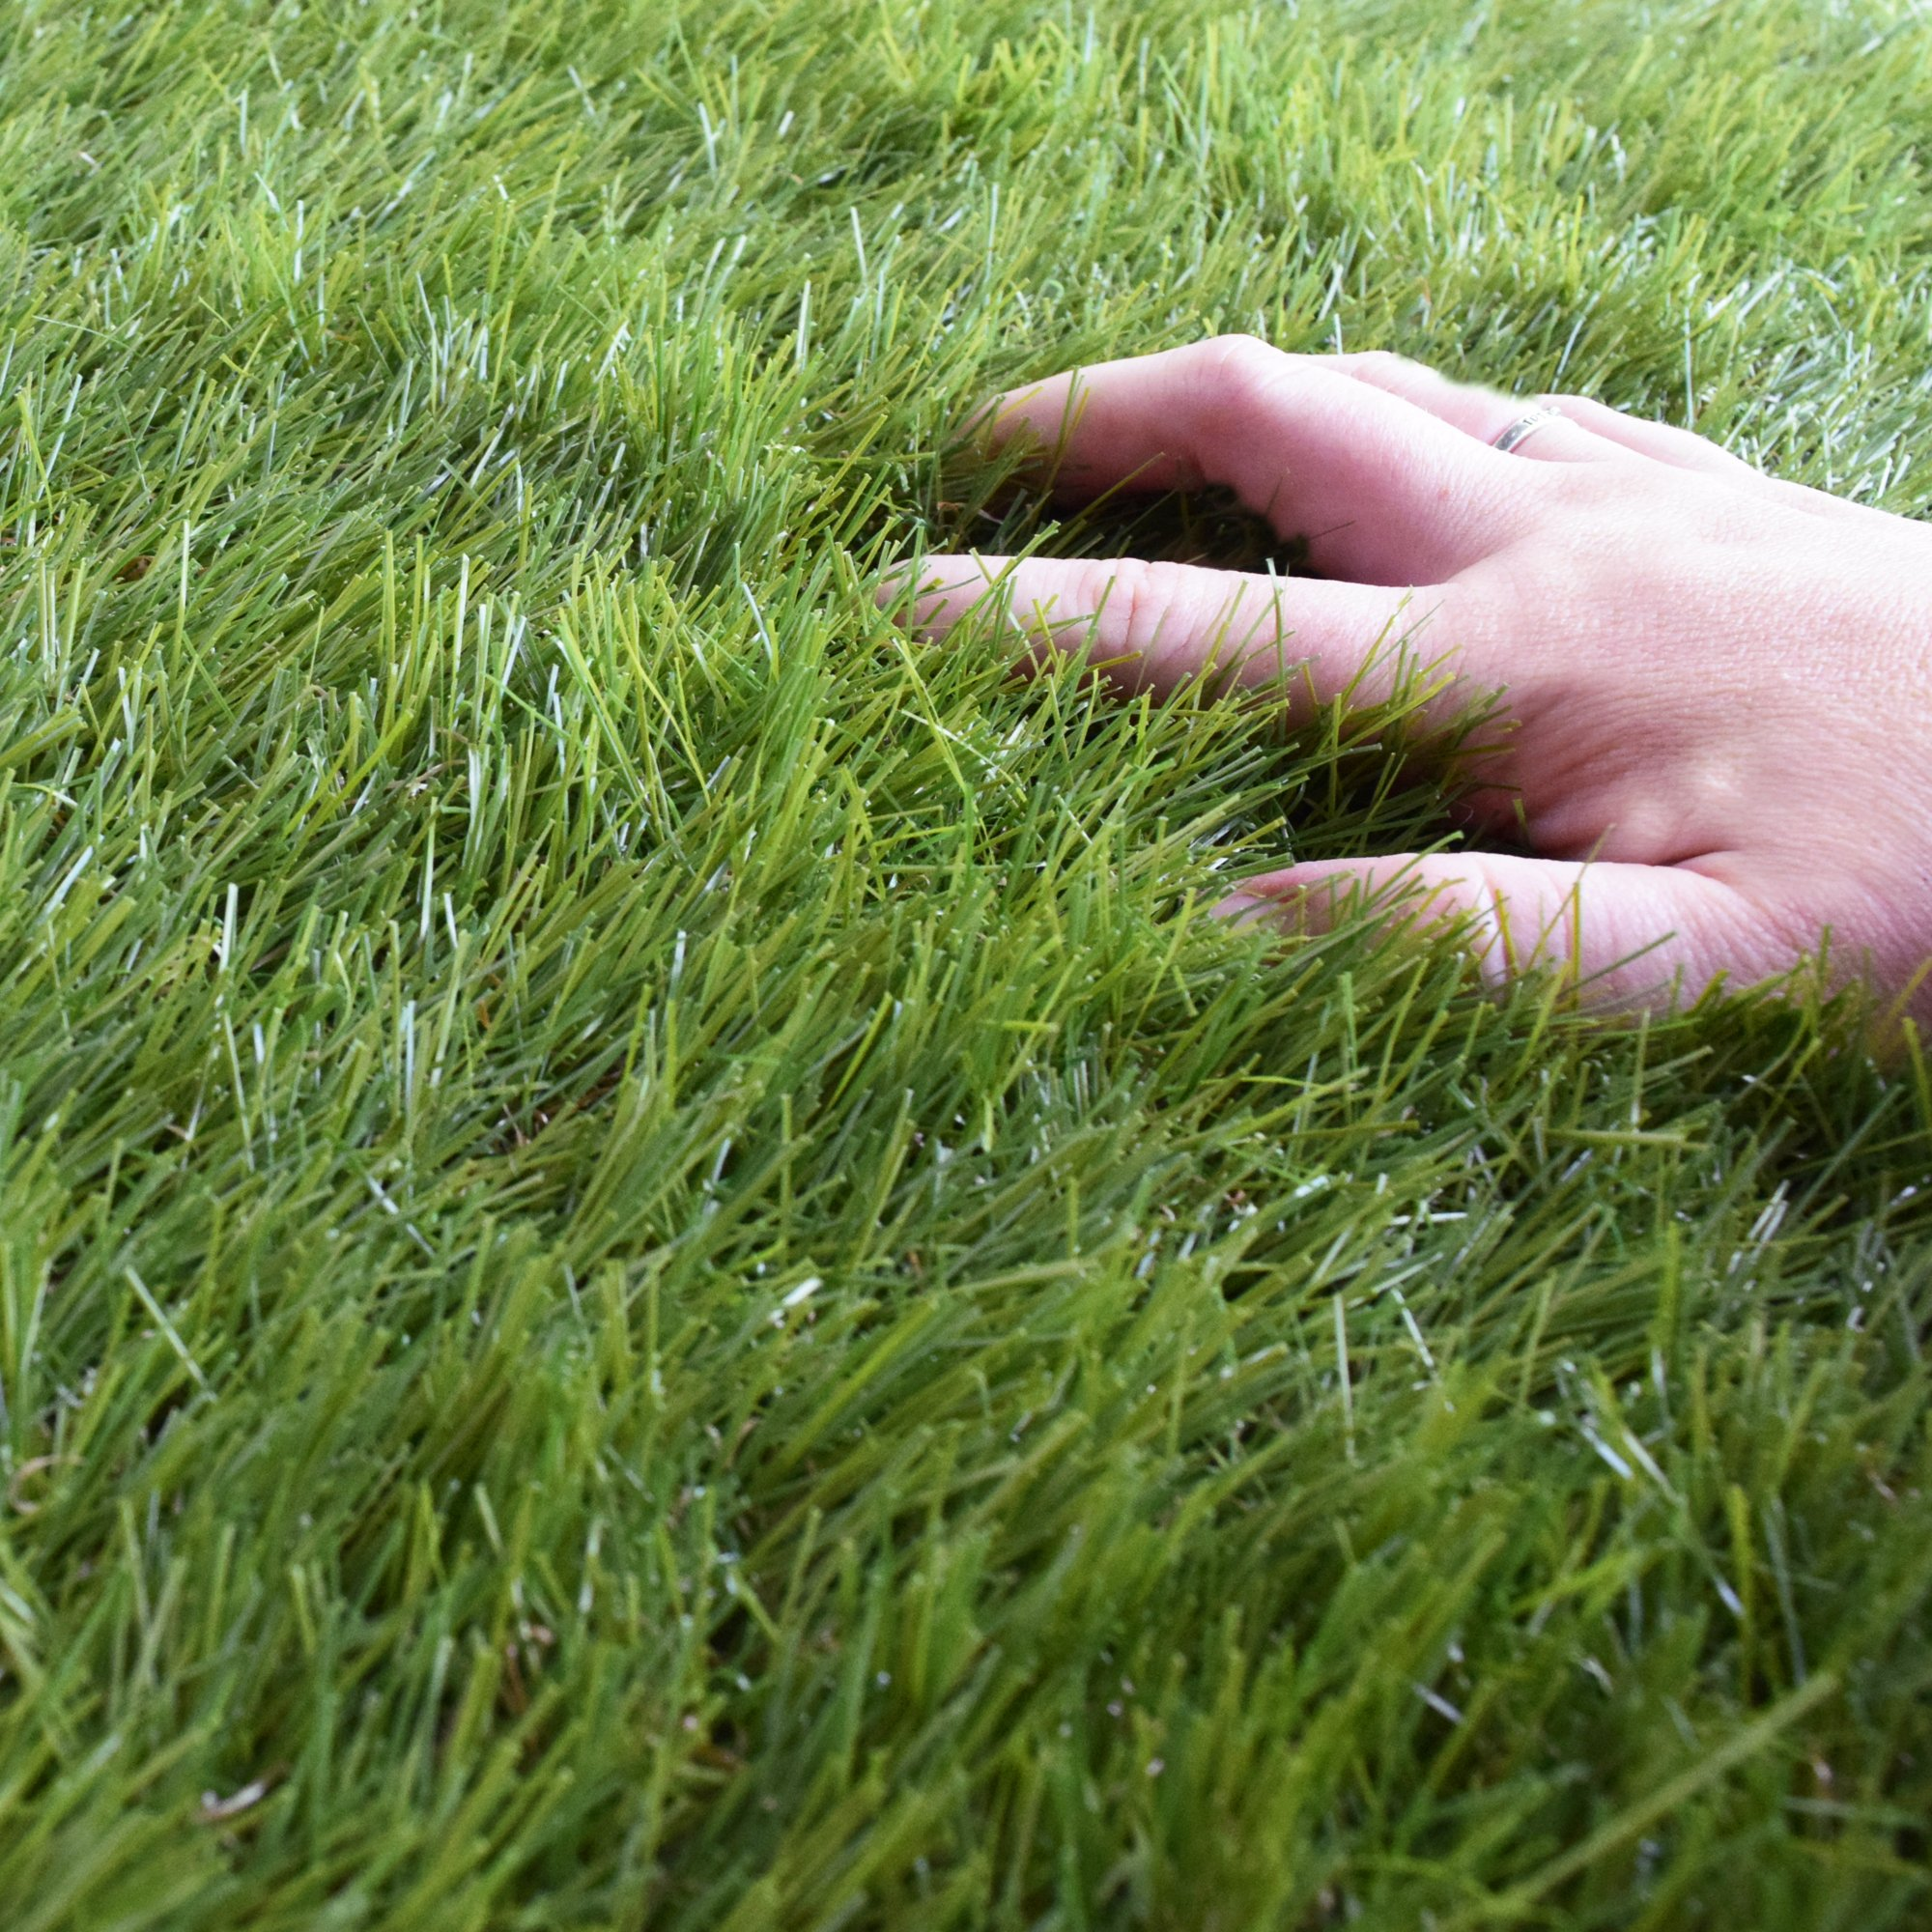 iCustomRug Deluxe Indoor/Outdoor Grass Shag Rug Great for Exterior Patio Or Lawn, 7' x 12' Made Ultra Thick and Soft